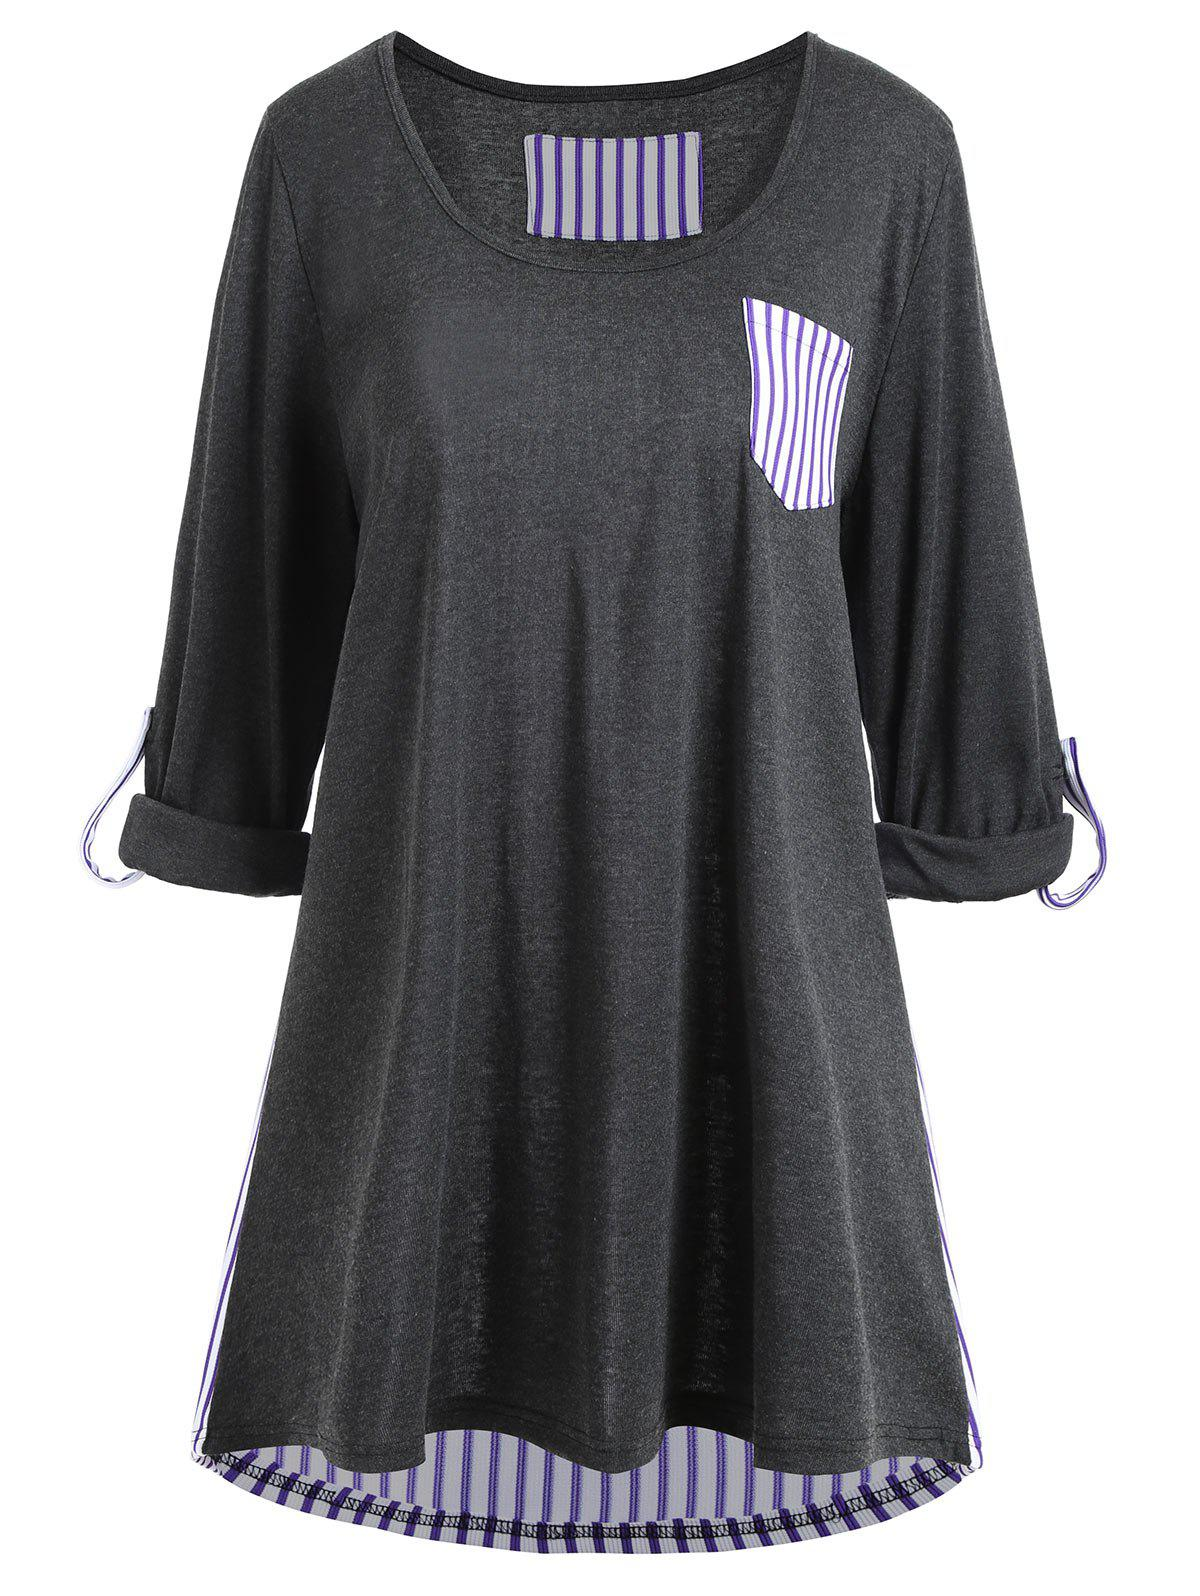 Plus Size Striped Panel High Low Pocket TeeWOMEN<br><br>Size: 5XL; Color: DEEP GRAY; Material: Cotton,Polyester; Shirt Length: Long; Sleeve Length: Full; Collar: Round Neck; Style: Casual; Season: Fall; Embellishment: Front Pocket; Pattern Type: Striped; Weight: 0.3700kg; Package Contents: 1 x T-shirt;